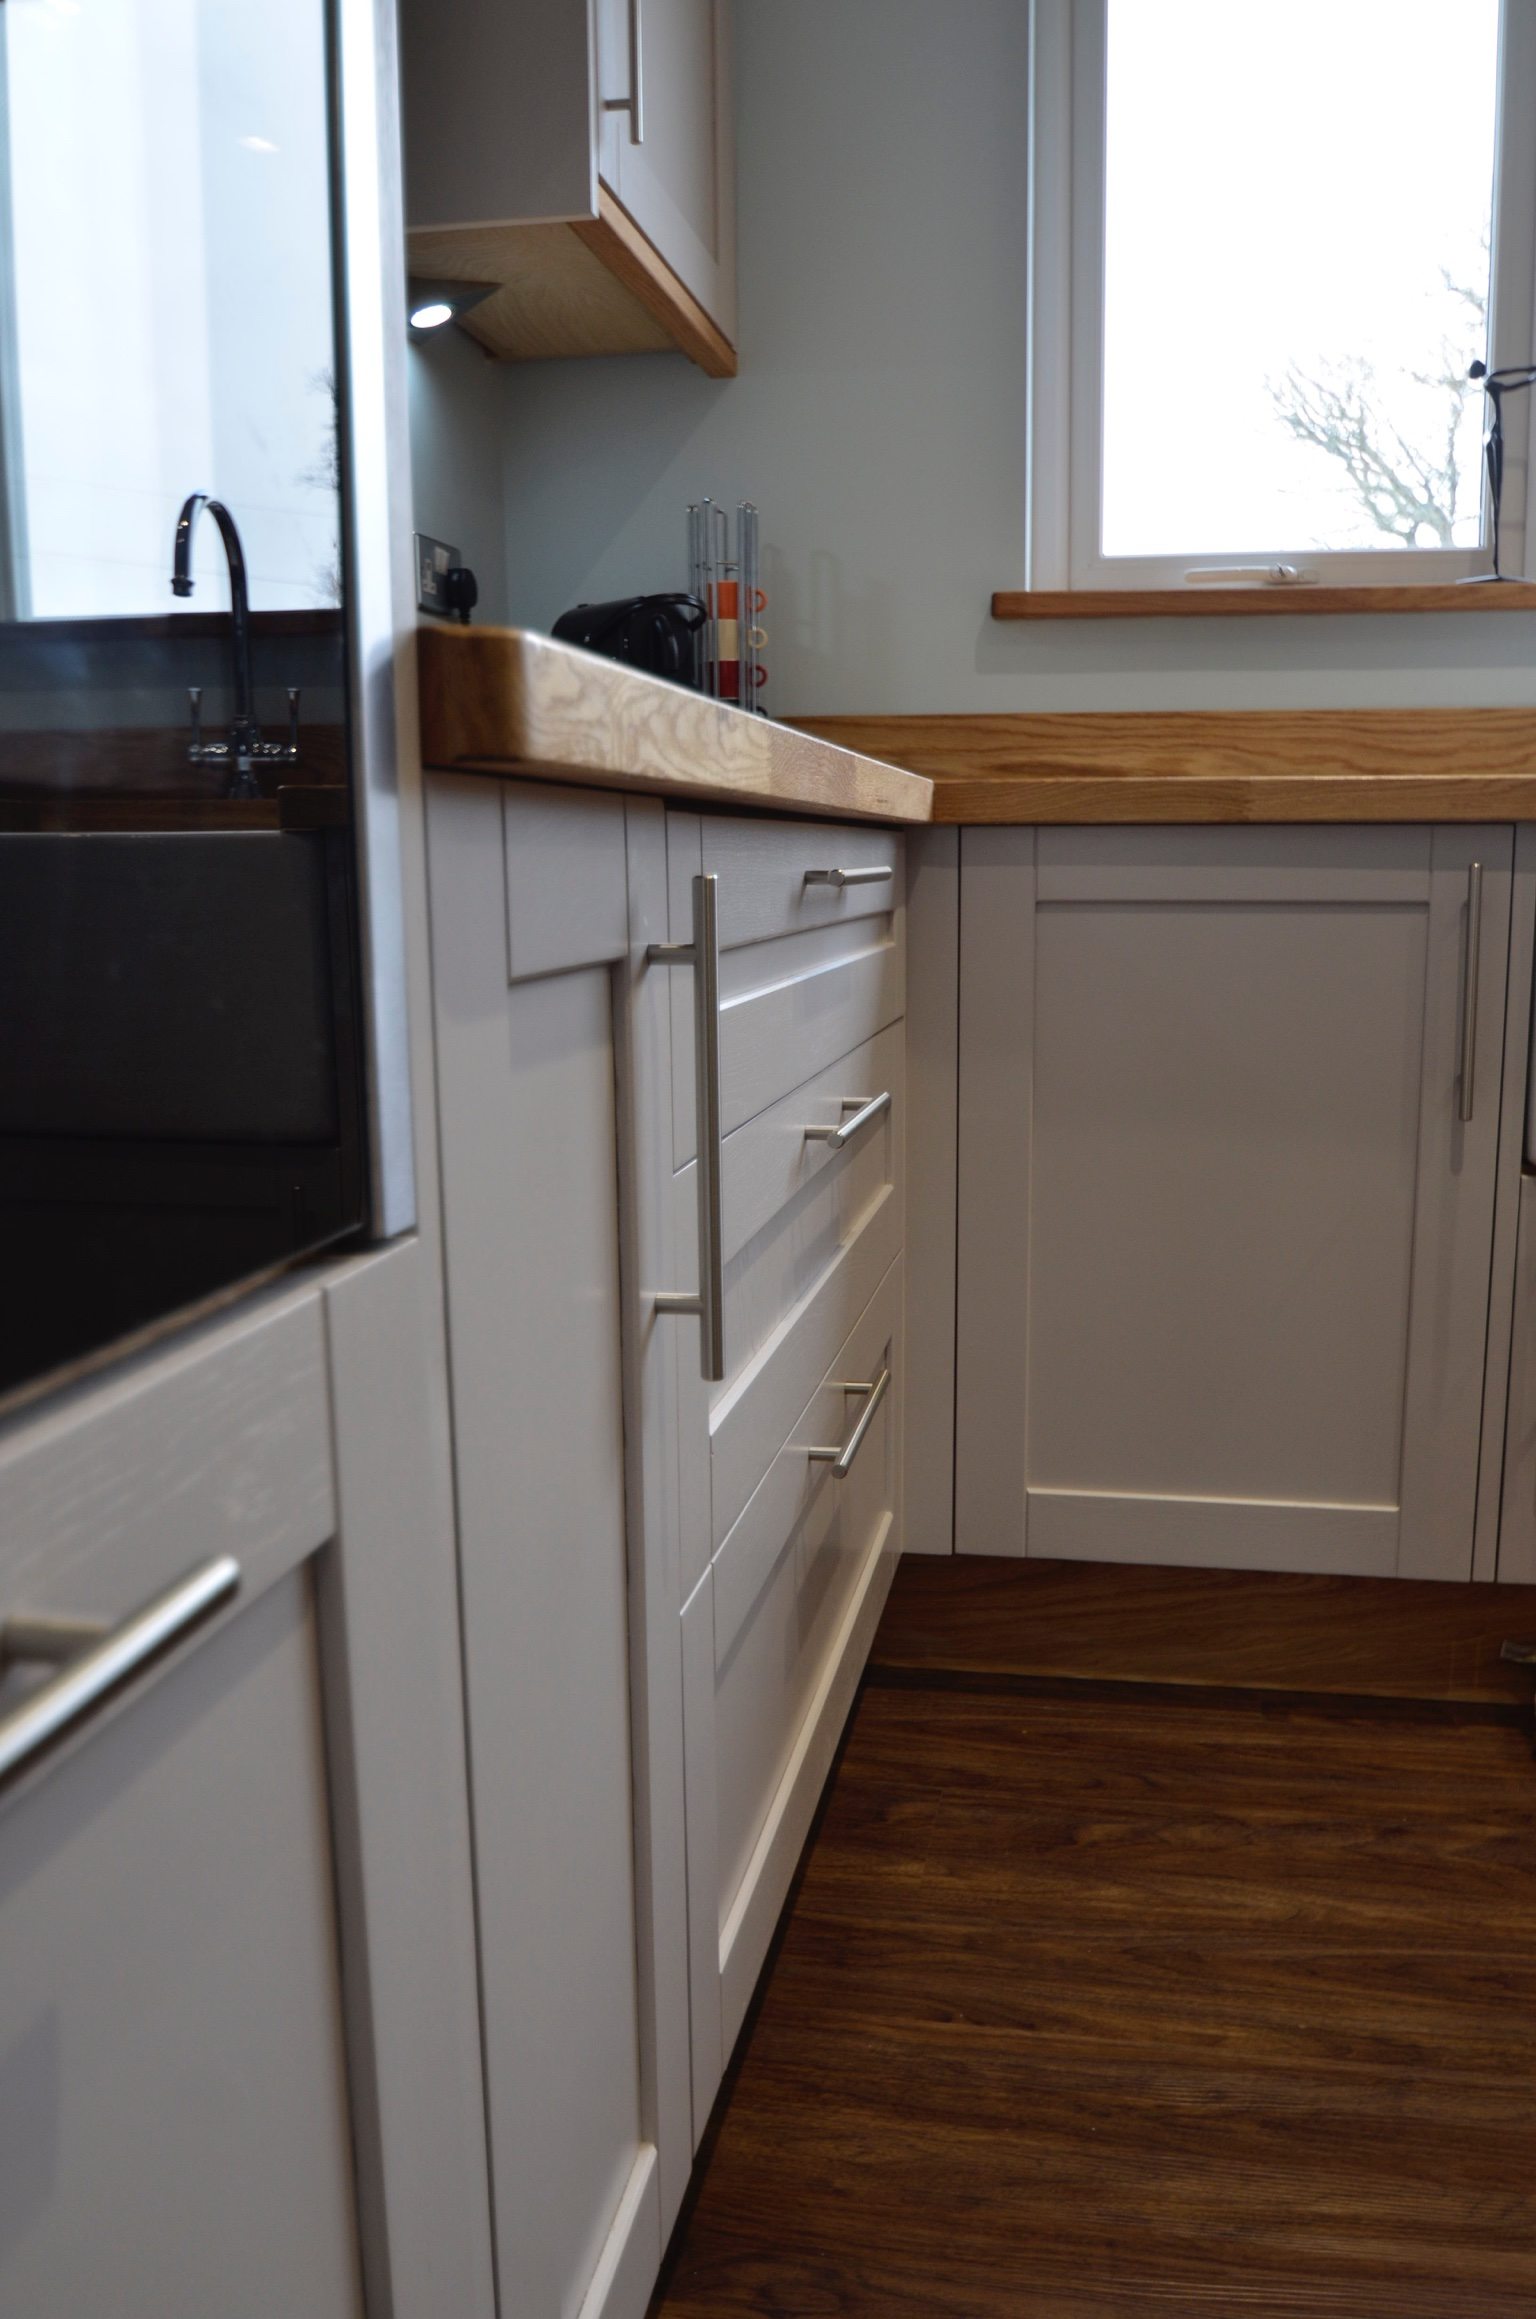 Turners Hill Bespoke Kitchen